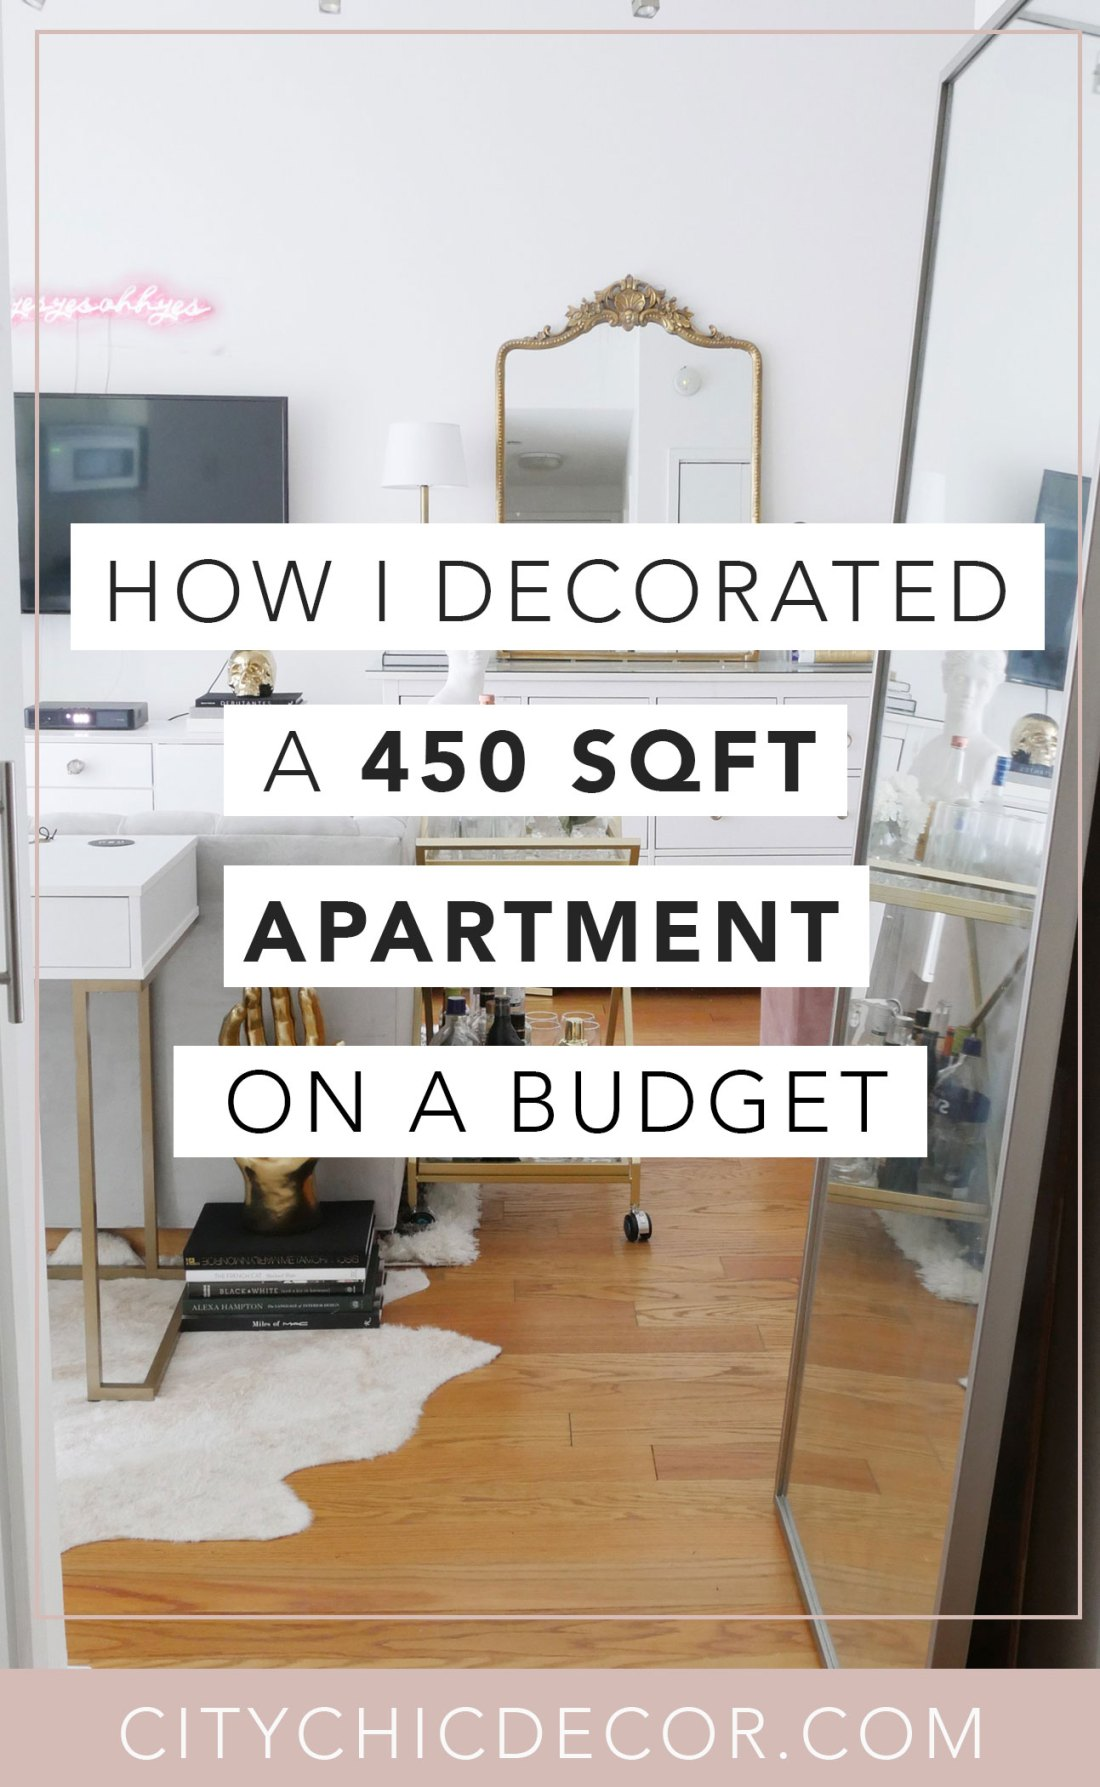 Live in a small apartment or studio and not sure how to decorate it? Or on a tight budget and feel like you don't have the money to spend on new furniture? Well, you can finally erase those fears! Learn how to decorate turn a small space into a chic home WHILE staying on a budget! #studioapartmentideas #tinystudioapartmentideas #studioapartmentdecorating #decoratingonabudget #smallapartmentideas